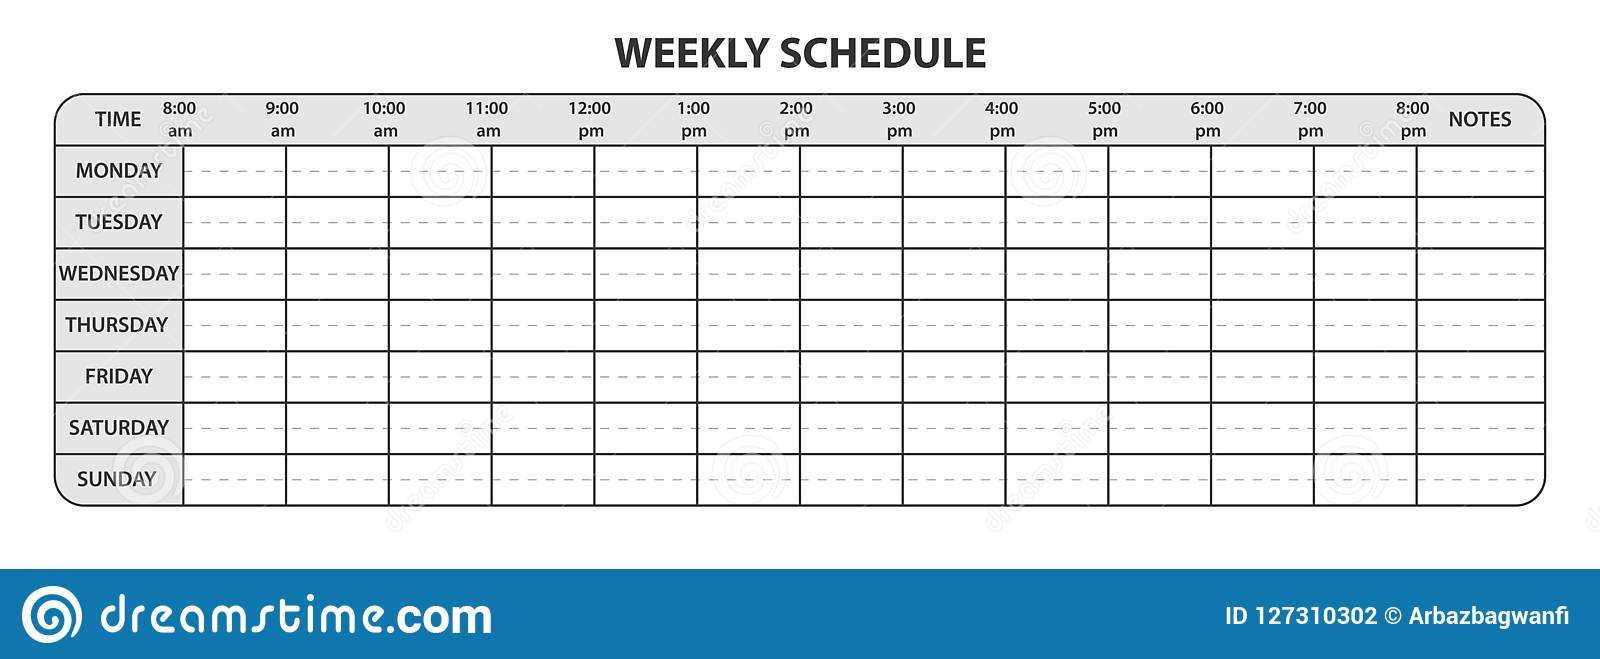 weekly schedule with times